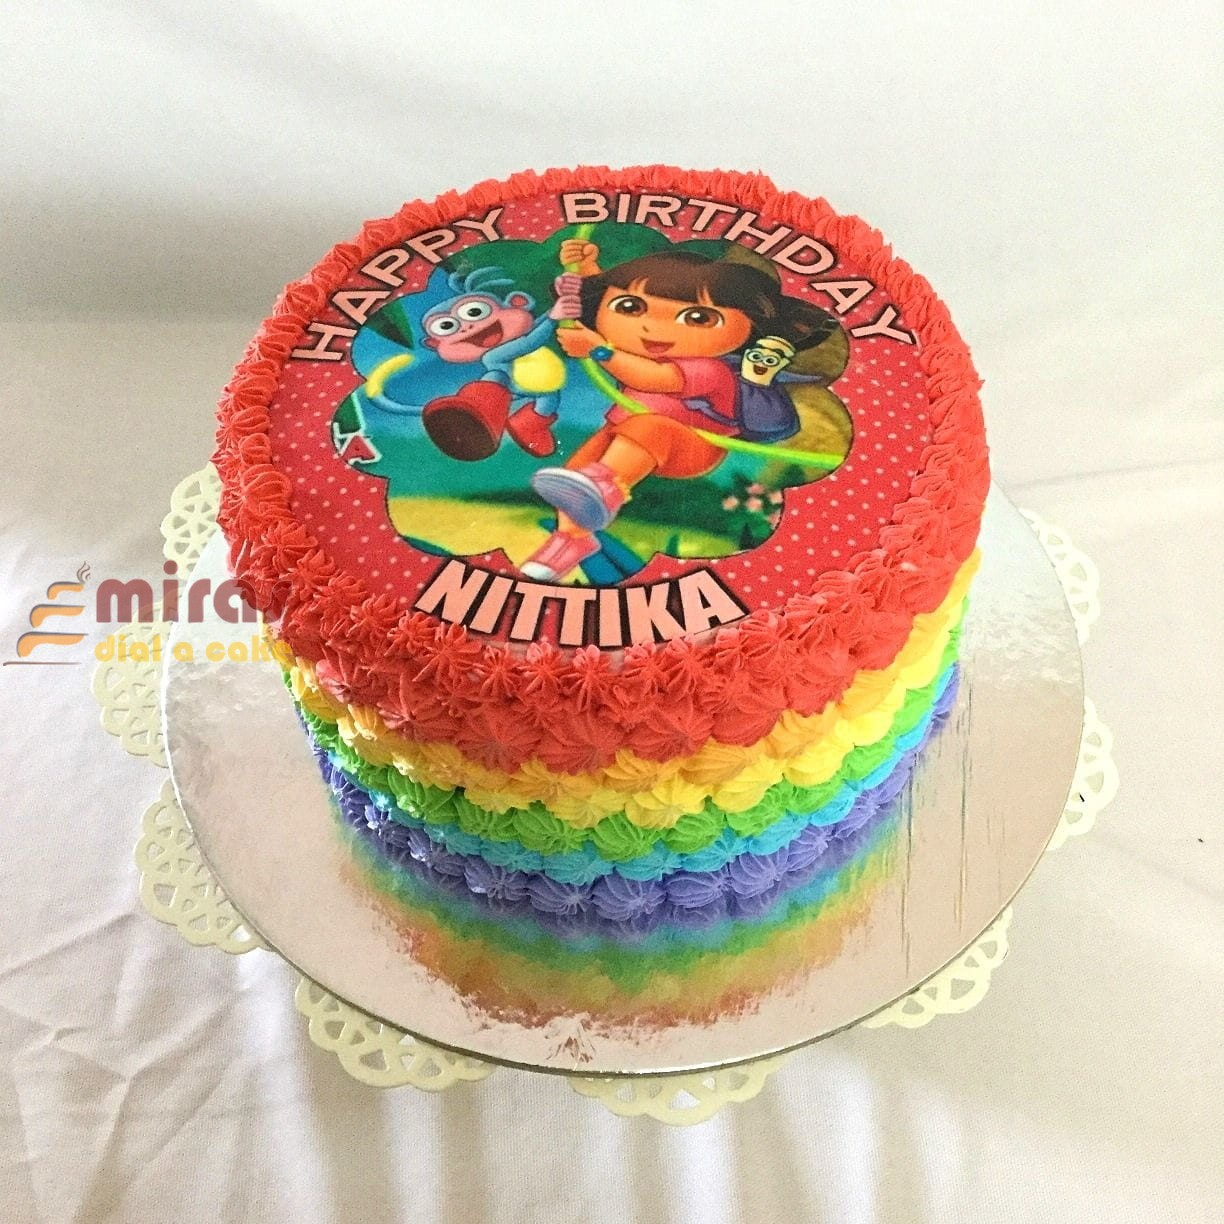 Swell Birthday Cake Dora Theme Cake Online Birthday Cakes For Kids Birthday Cards Printable Nowaargucafe Filternl